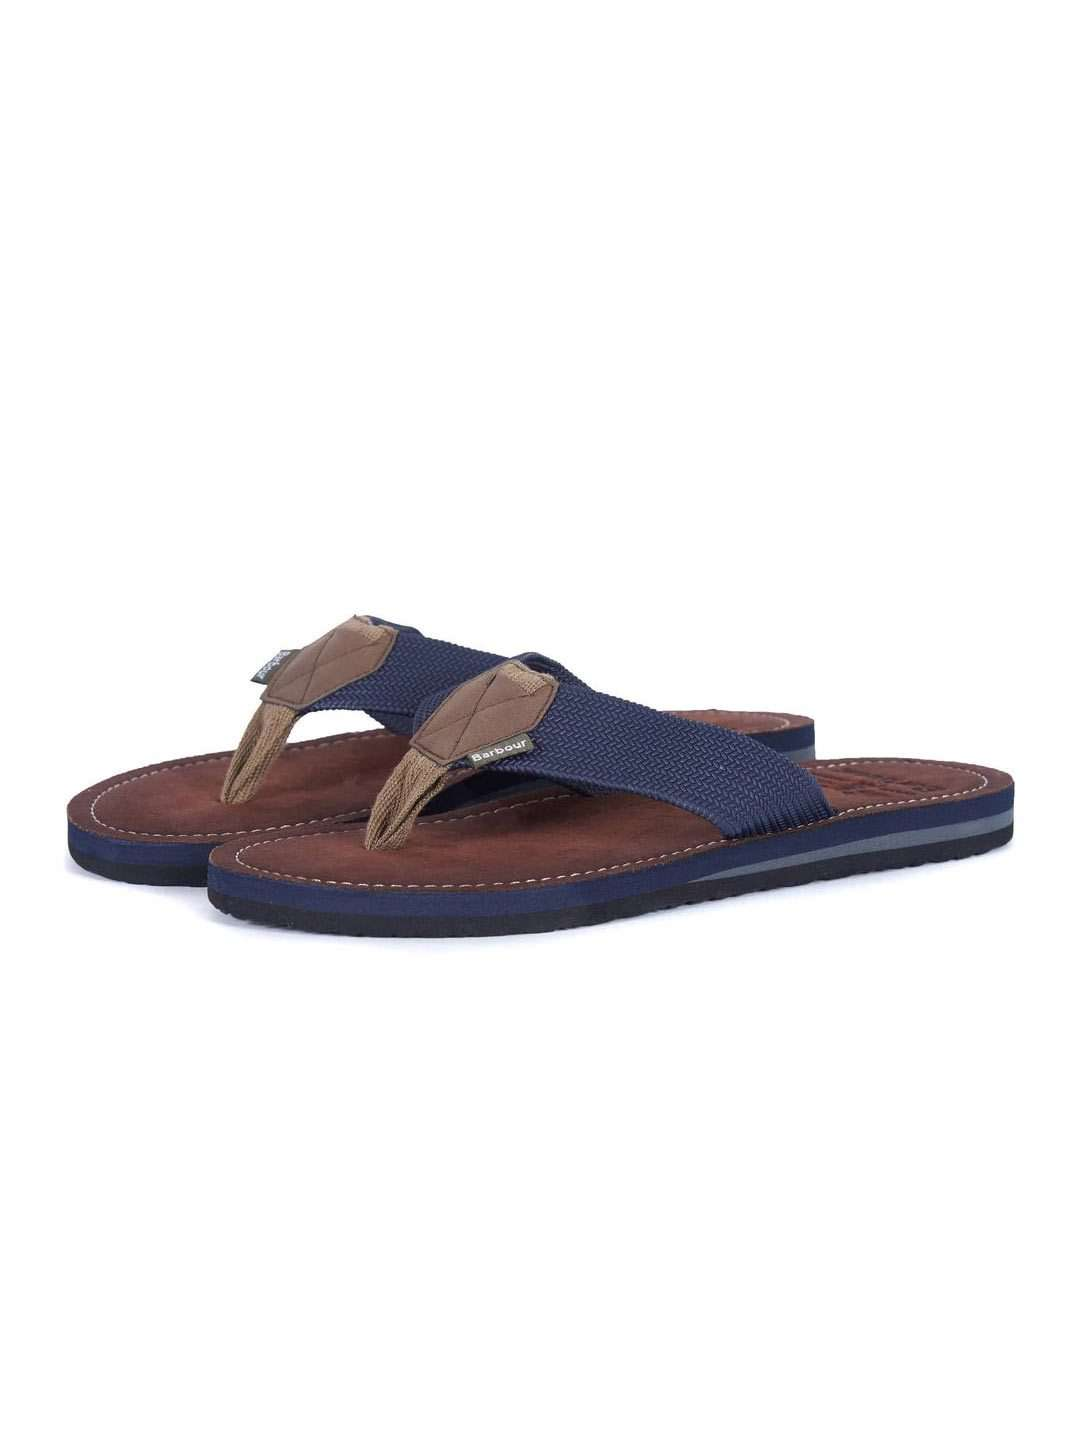 BARBOUR FOOTWEAR Toeman Sandal